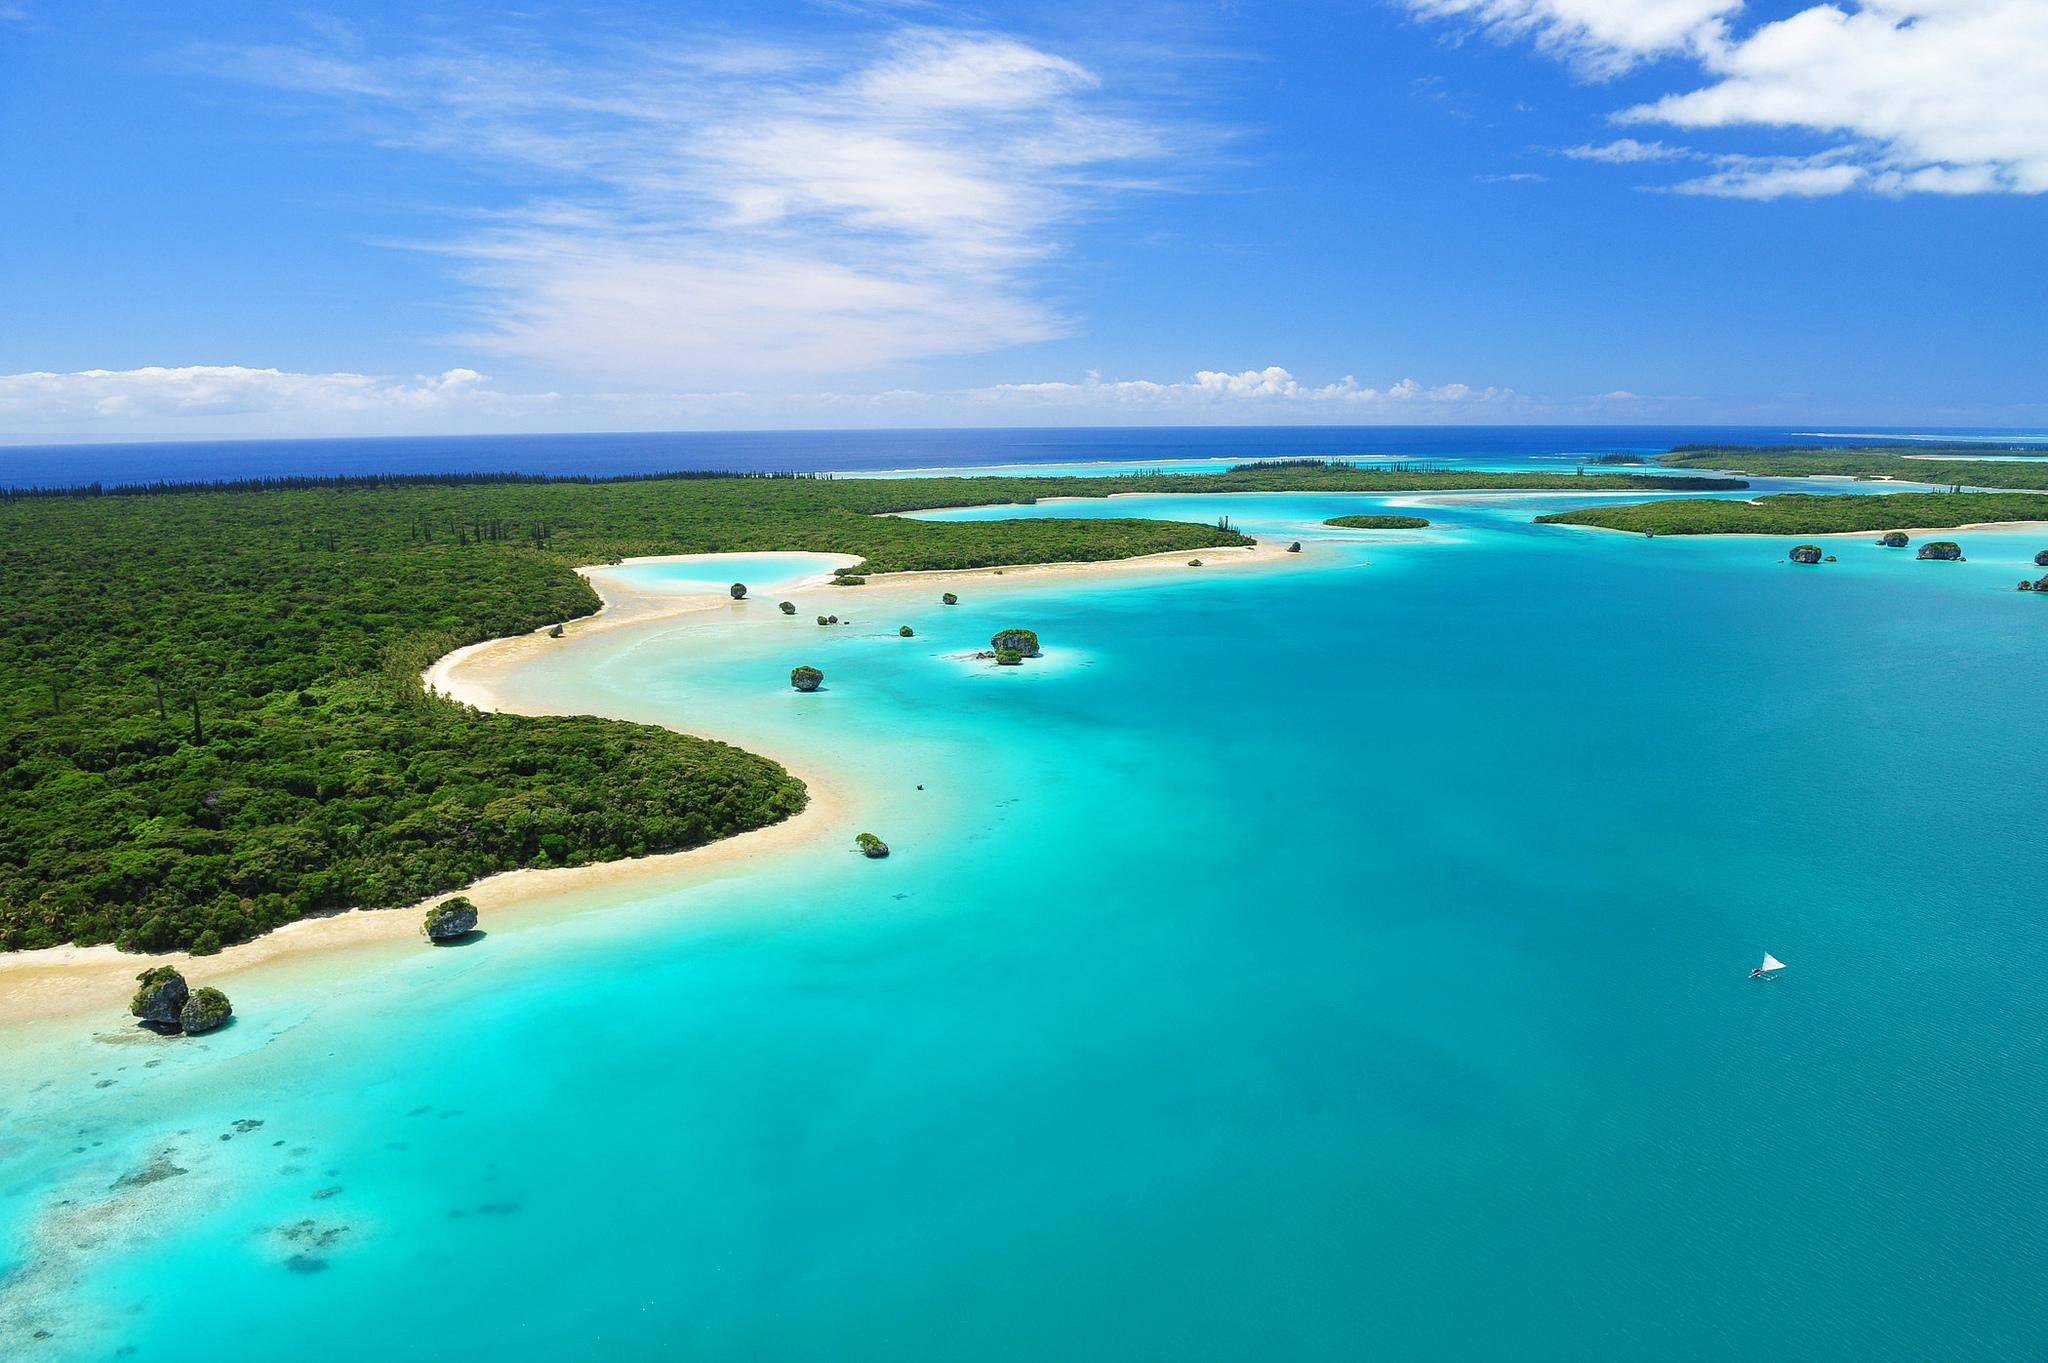 Region to discover: Islands of new caledonia